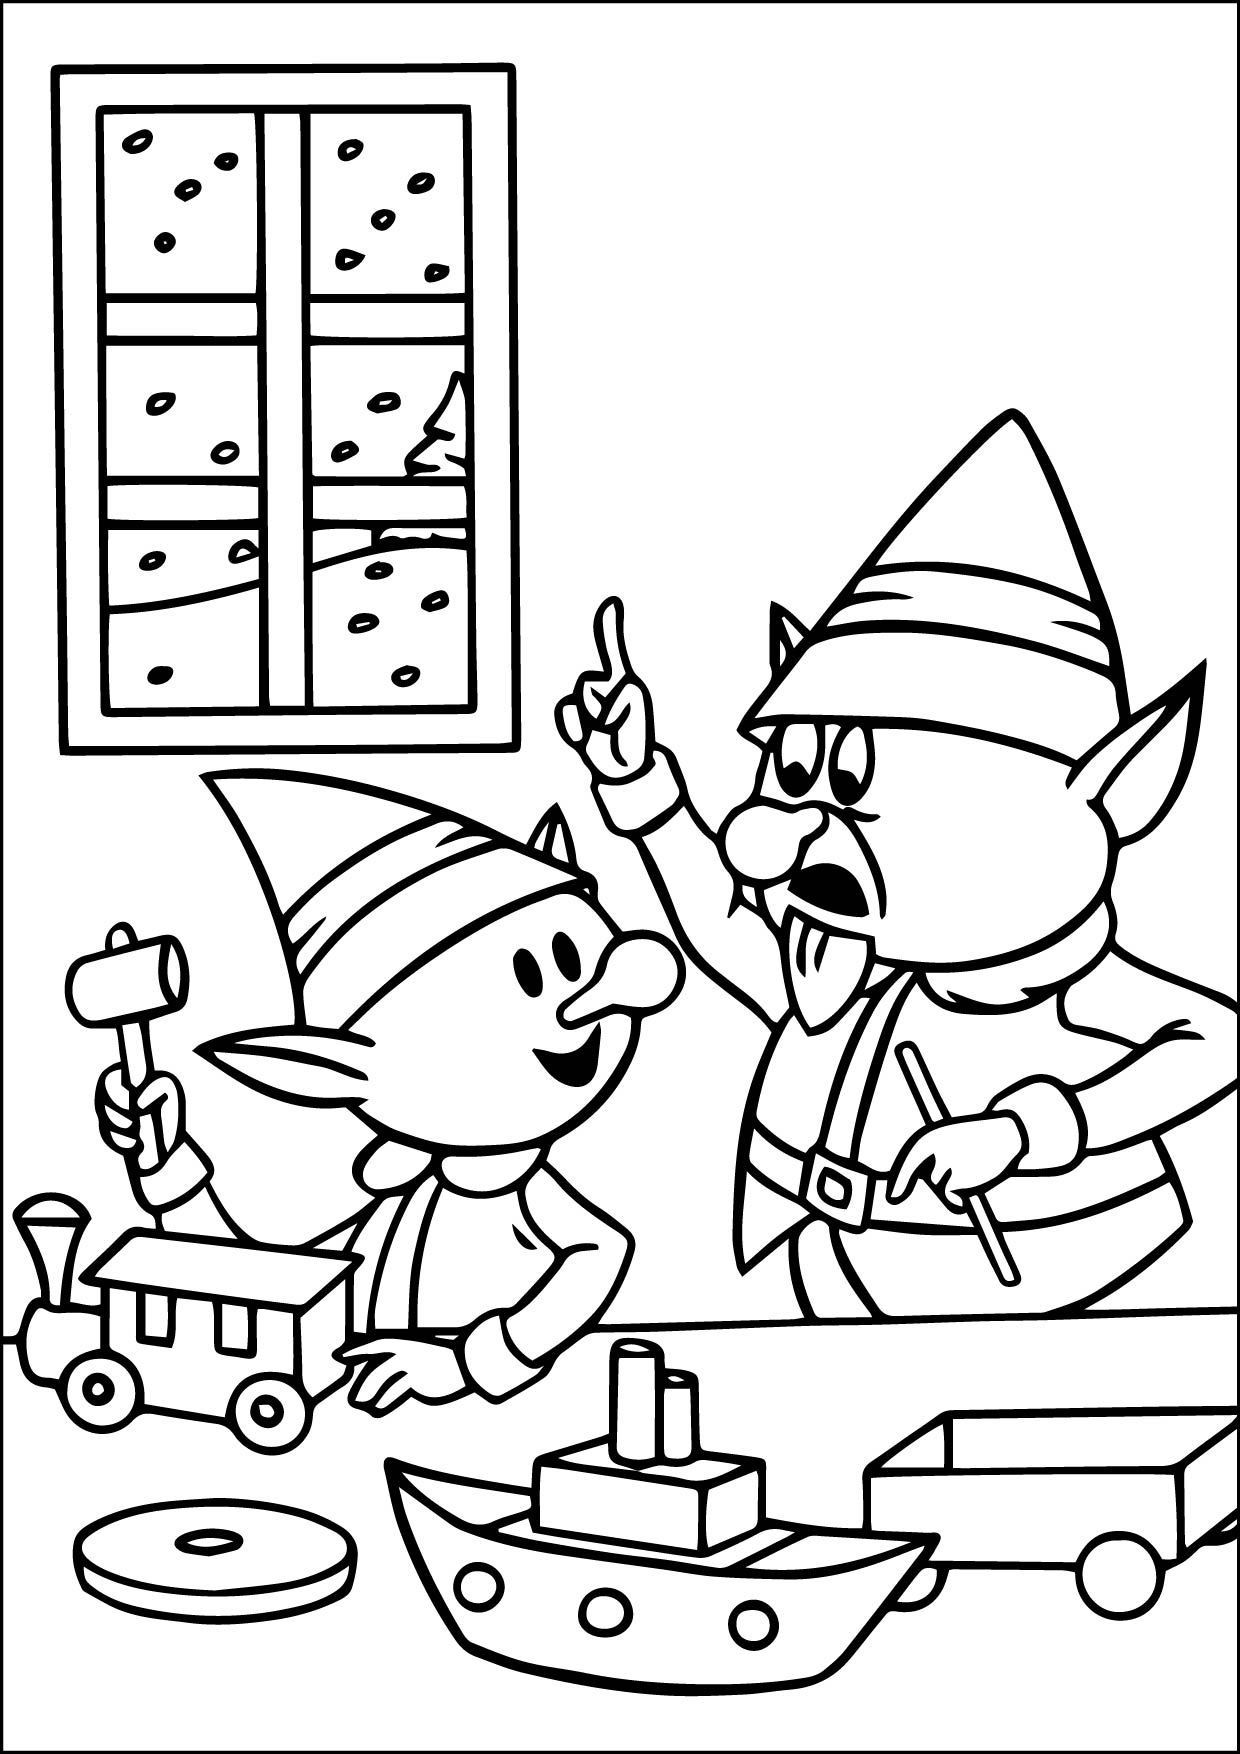 Cool Coloring Page 10 10 01